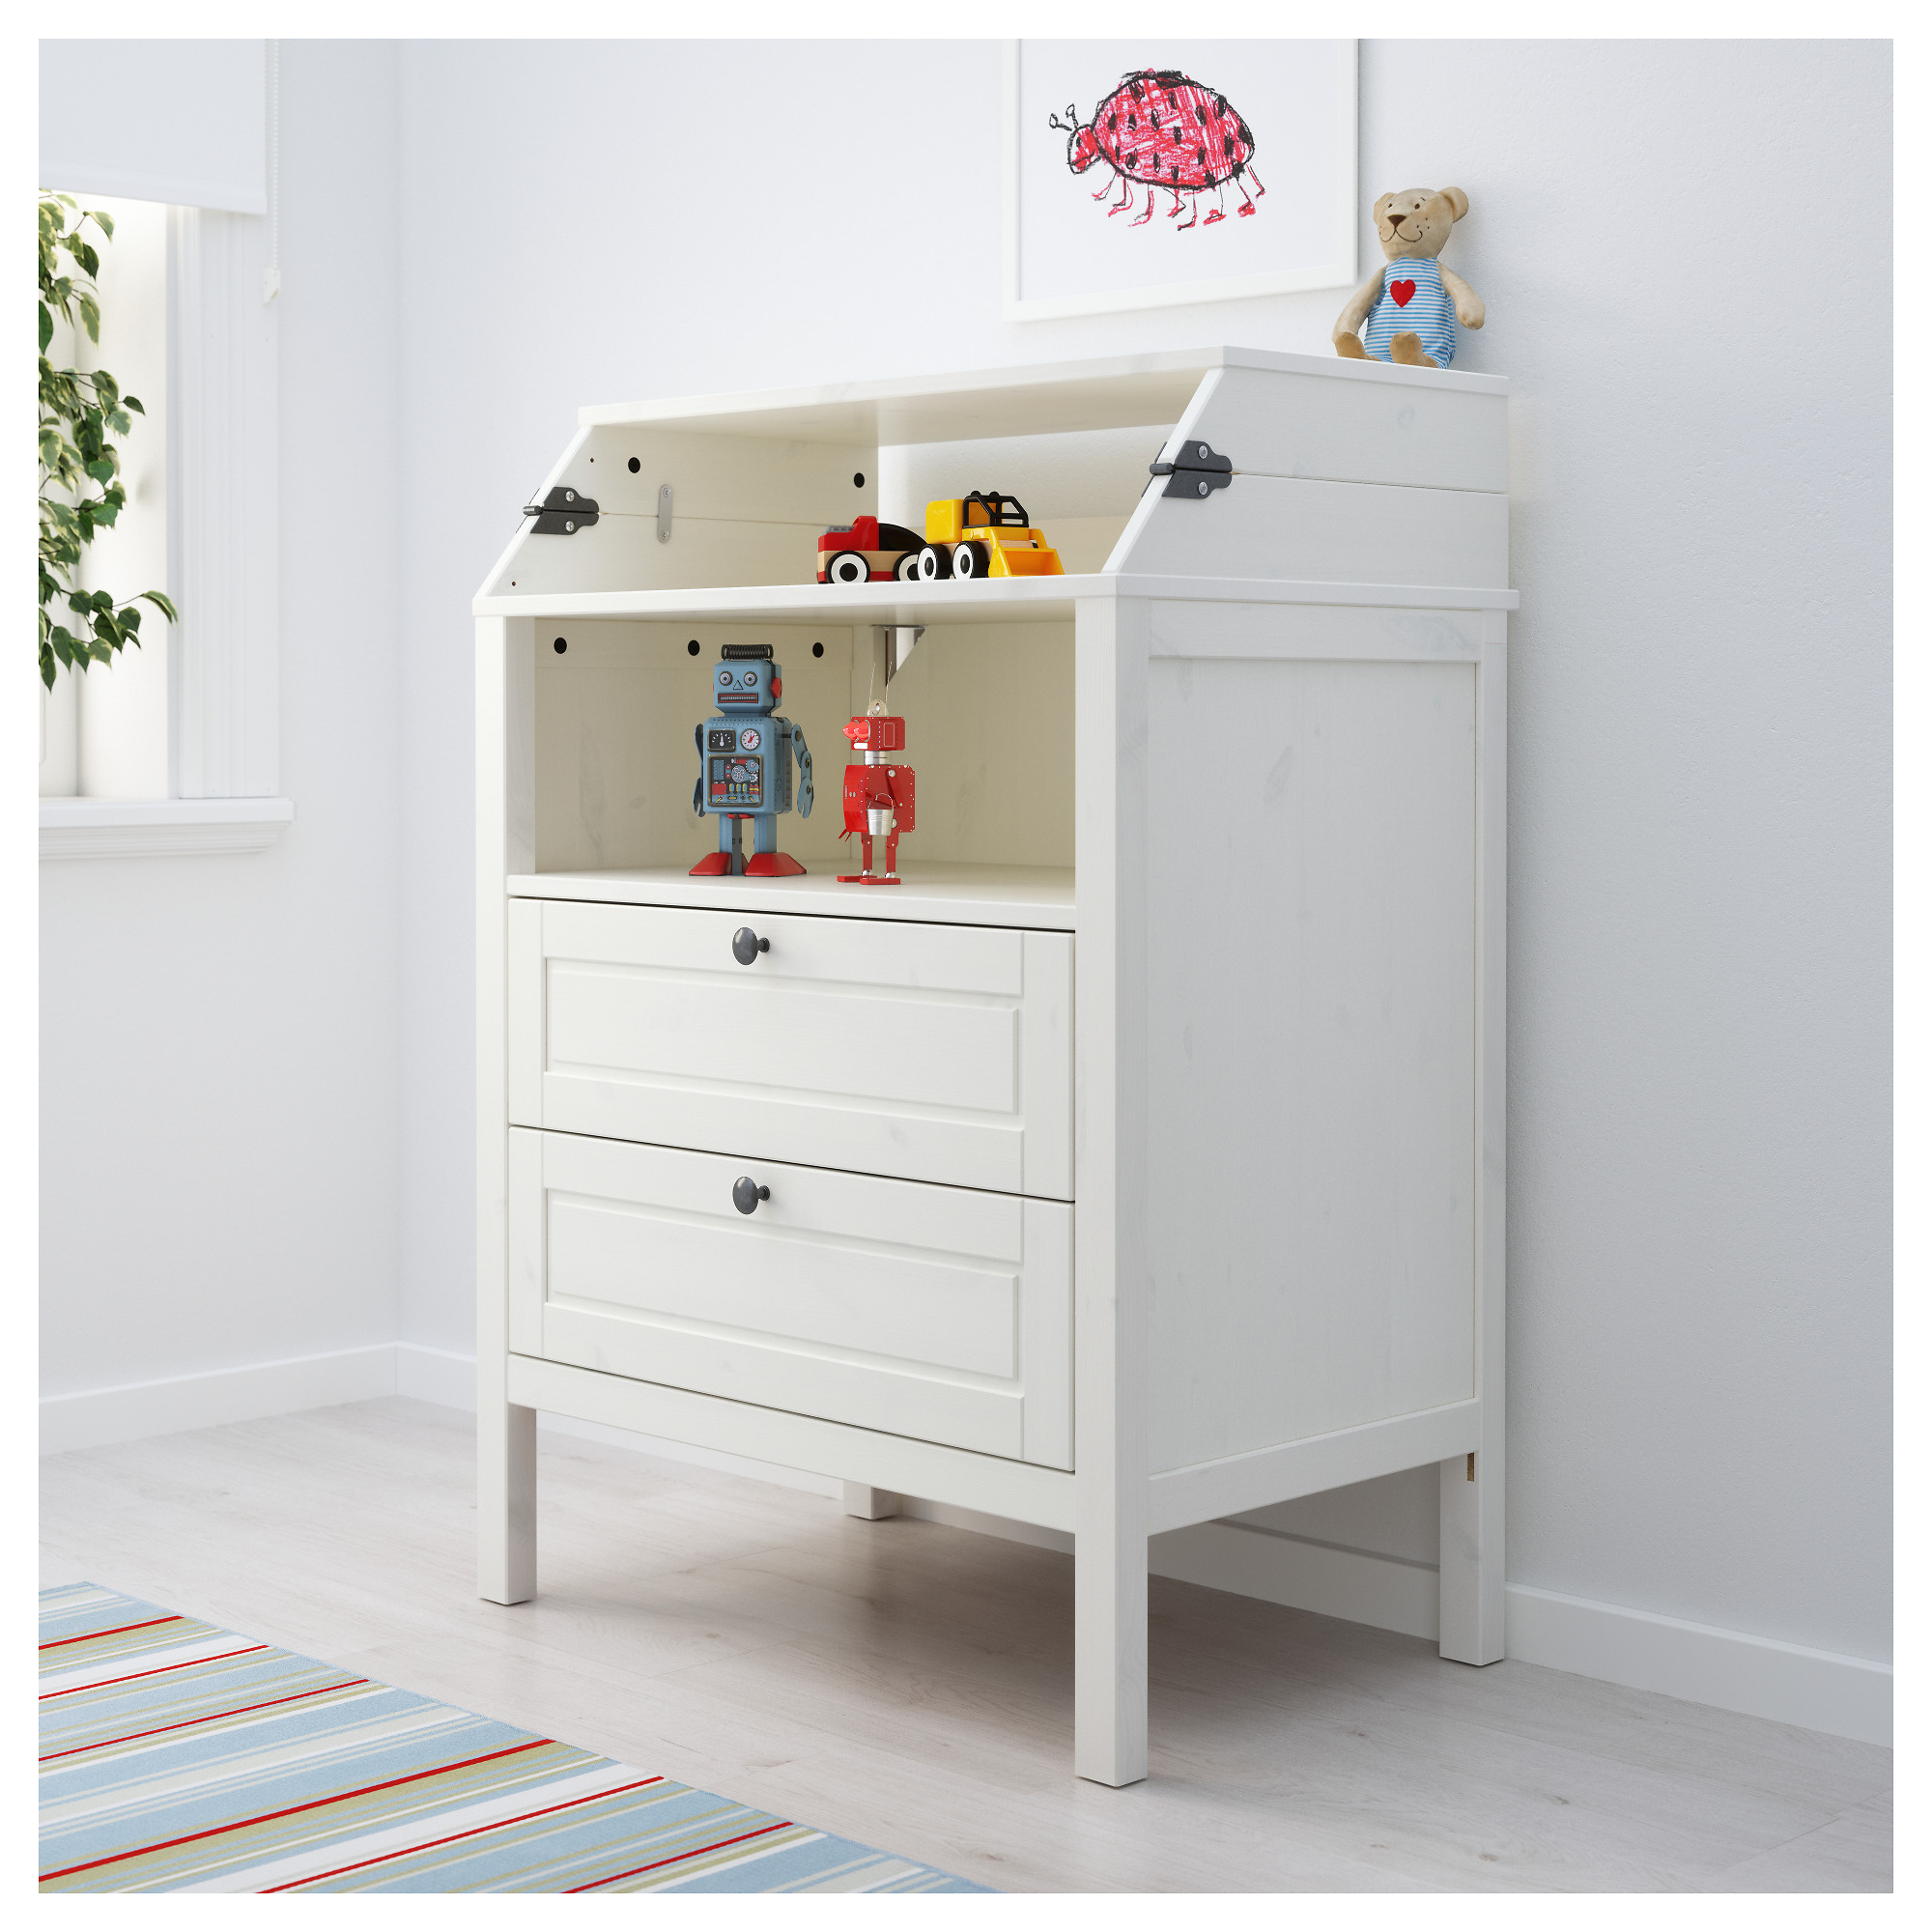 Sundvik Changing Table Chest Of Drawers White Ikea Hong Kong And Macau